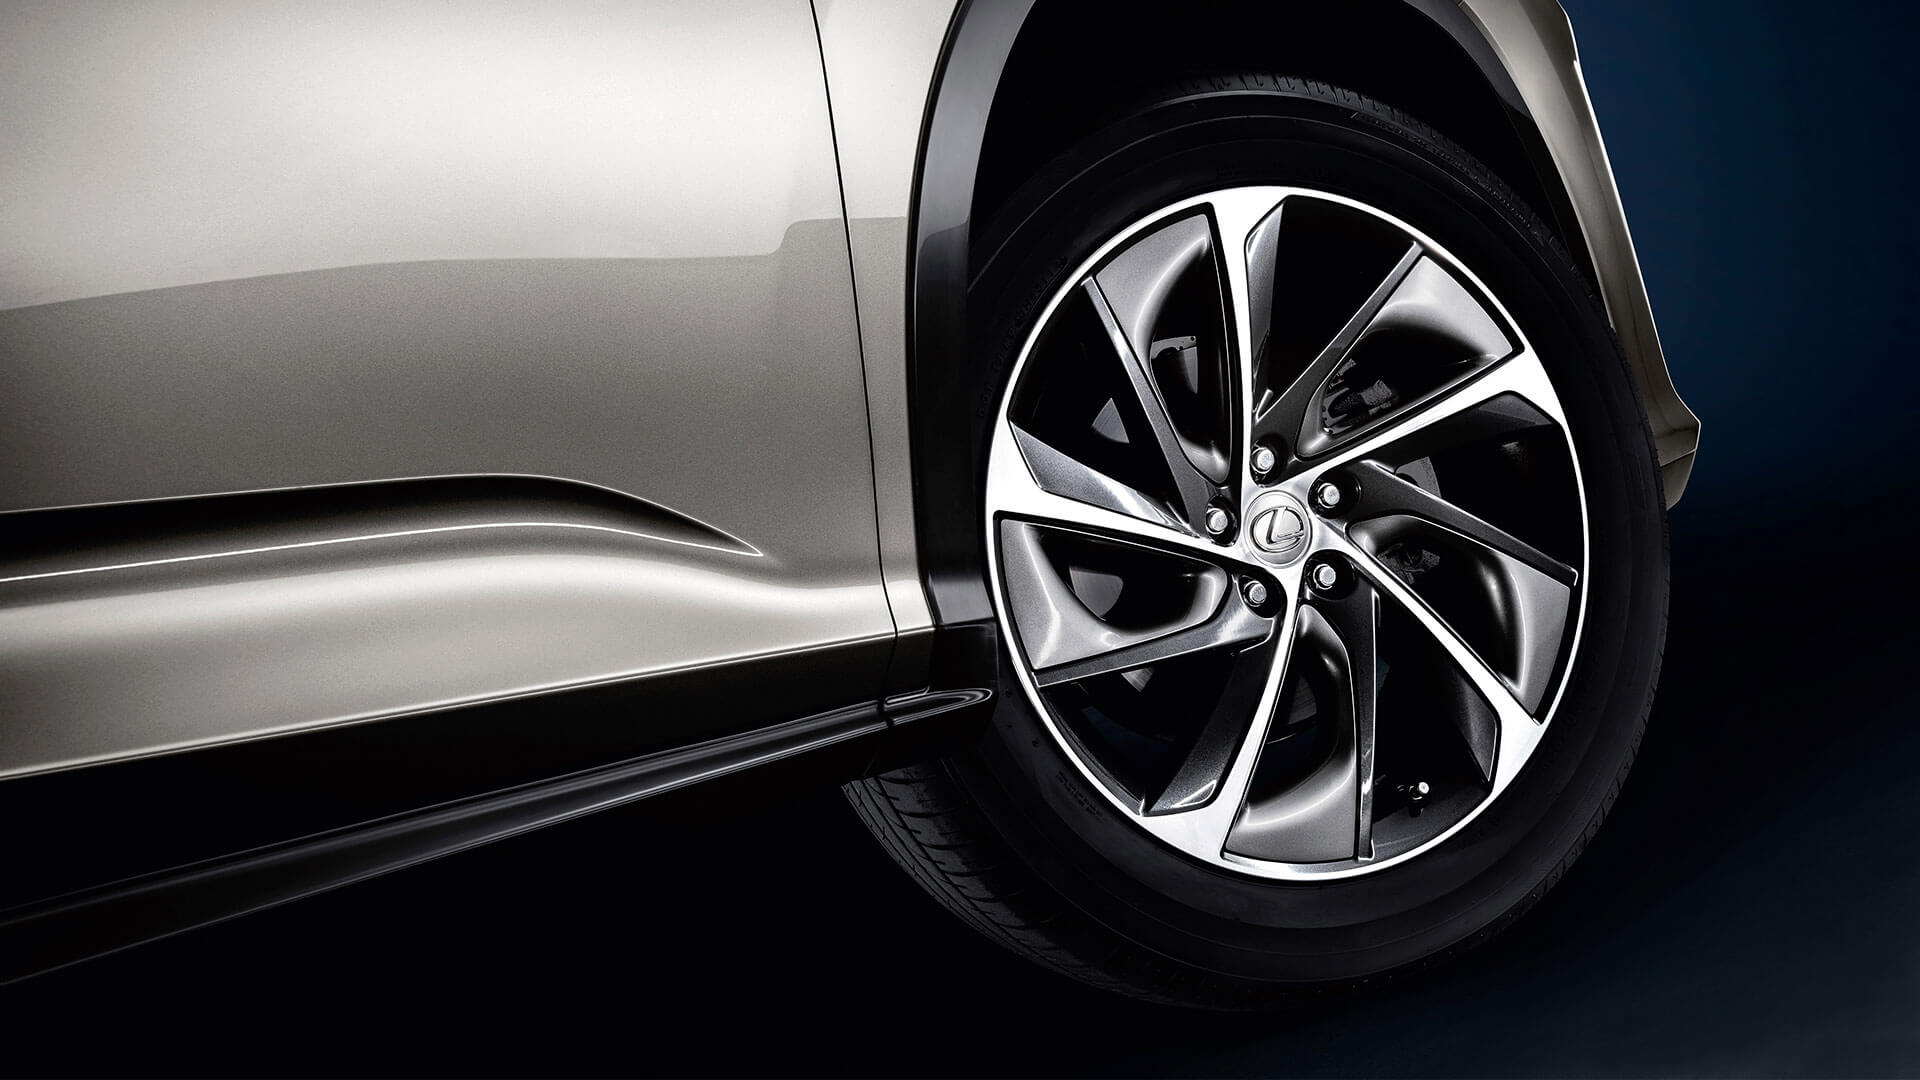 2017 lexus rx 450h features alloy wheels